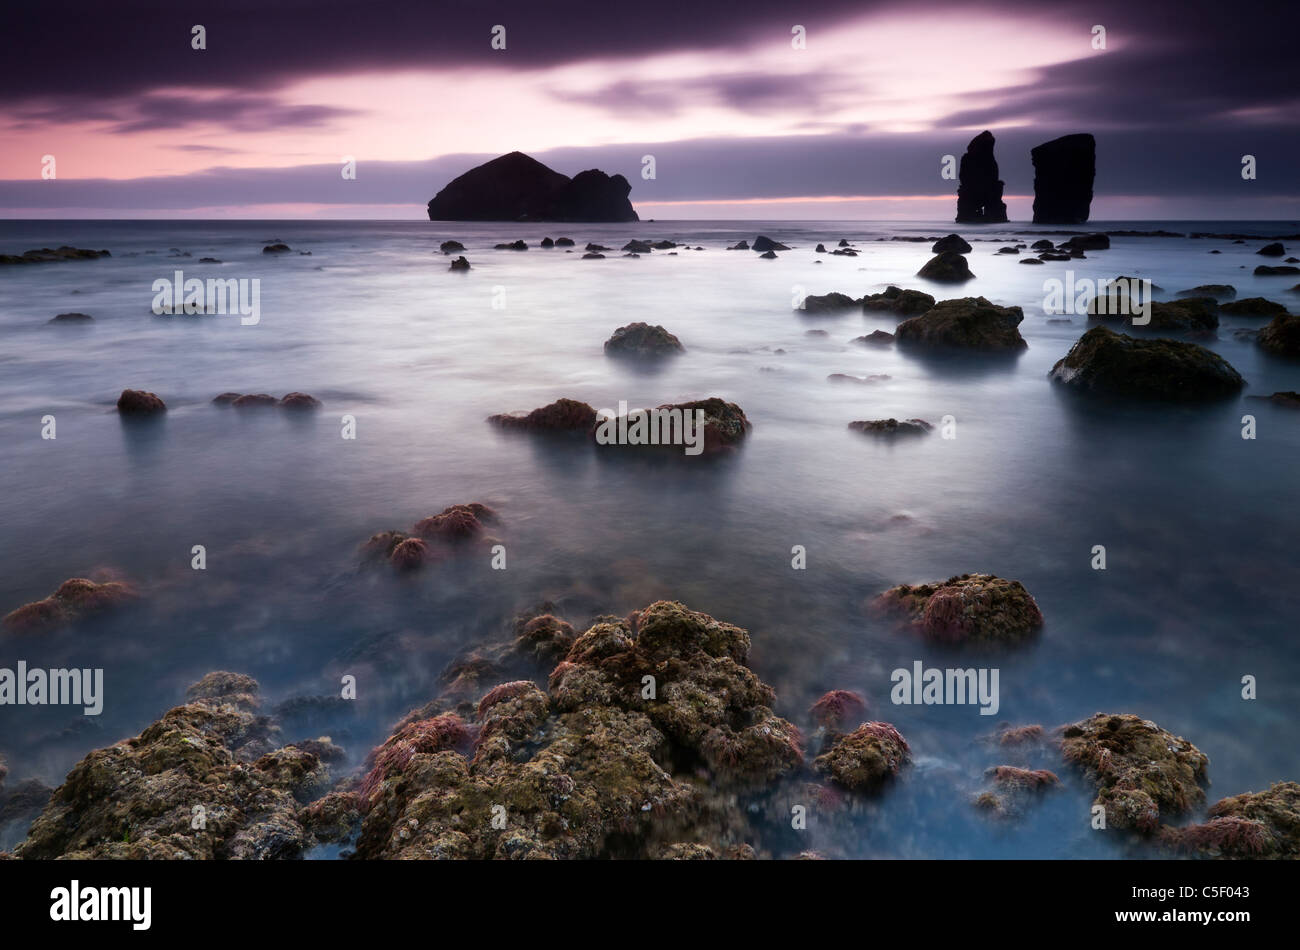 Waterscape on sunset with volcanic islets - Stock Image